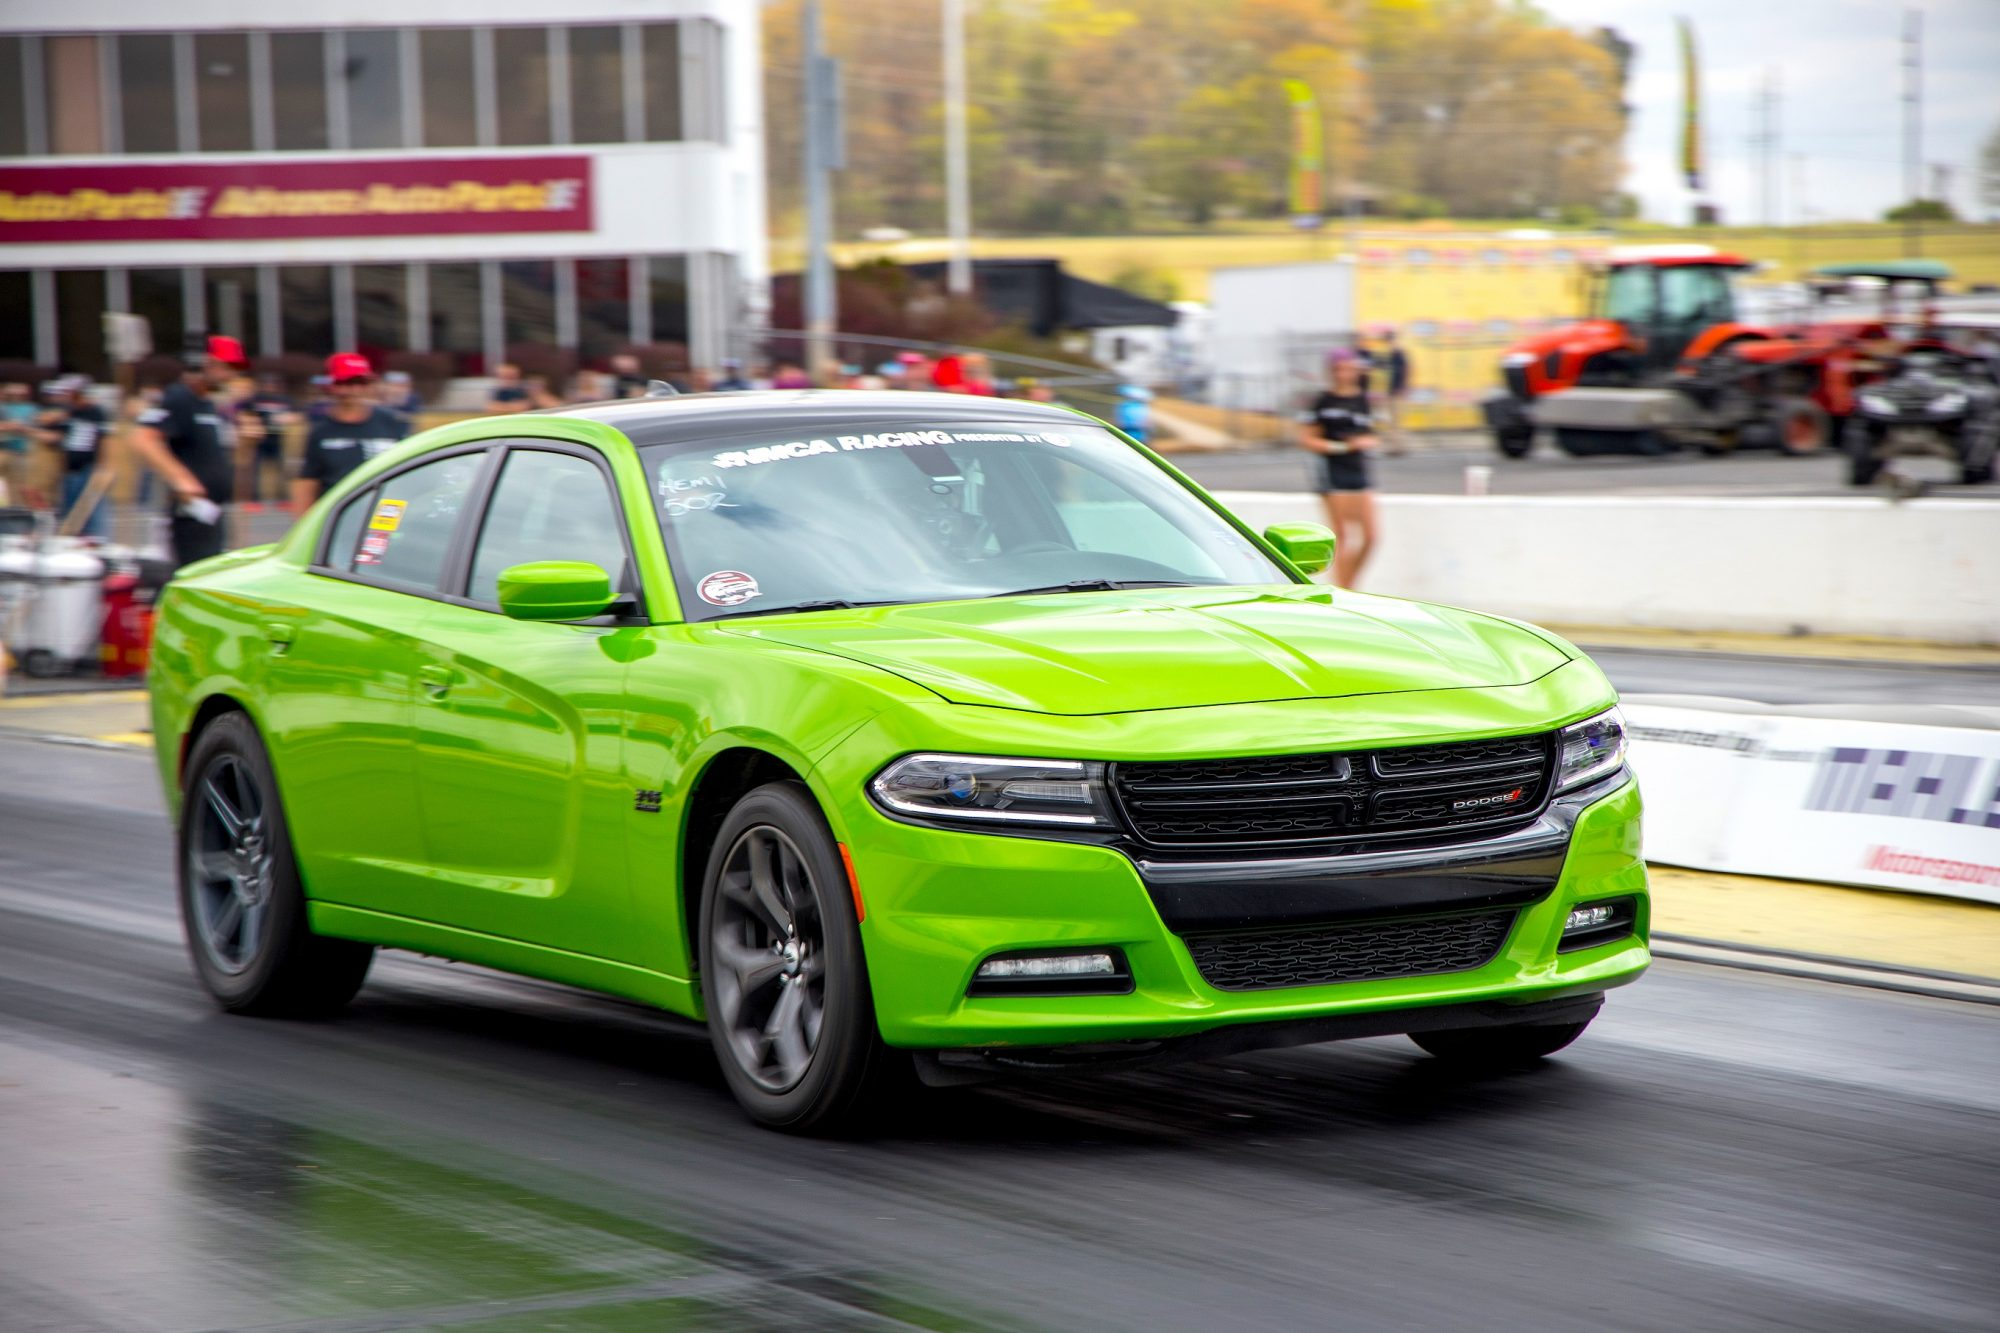 Green Dodge Charger drag racing at NMCA race